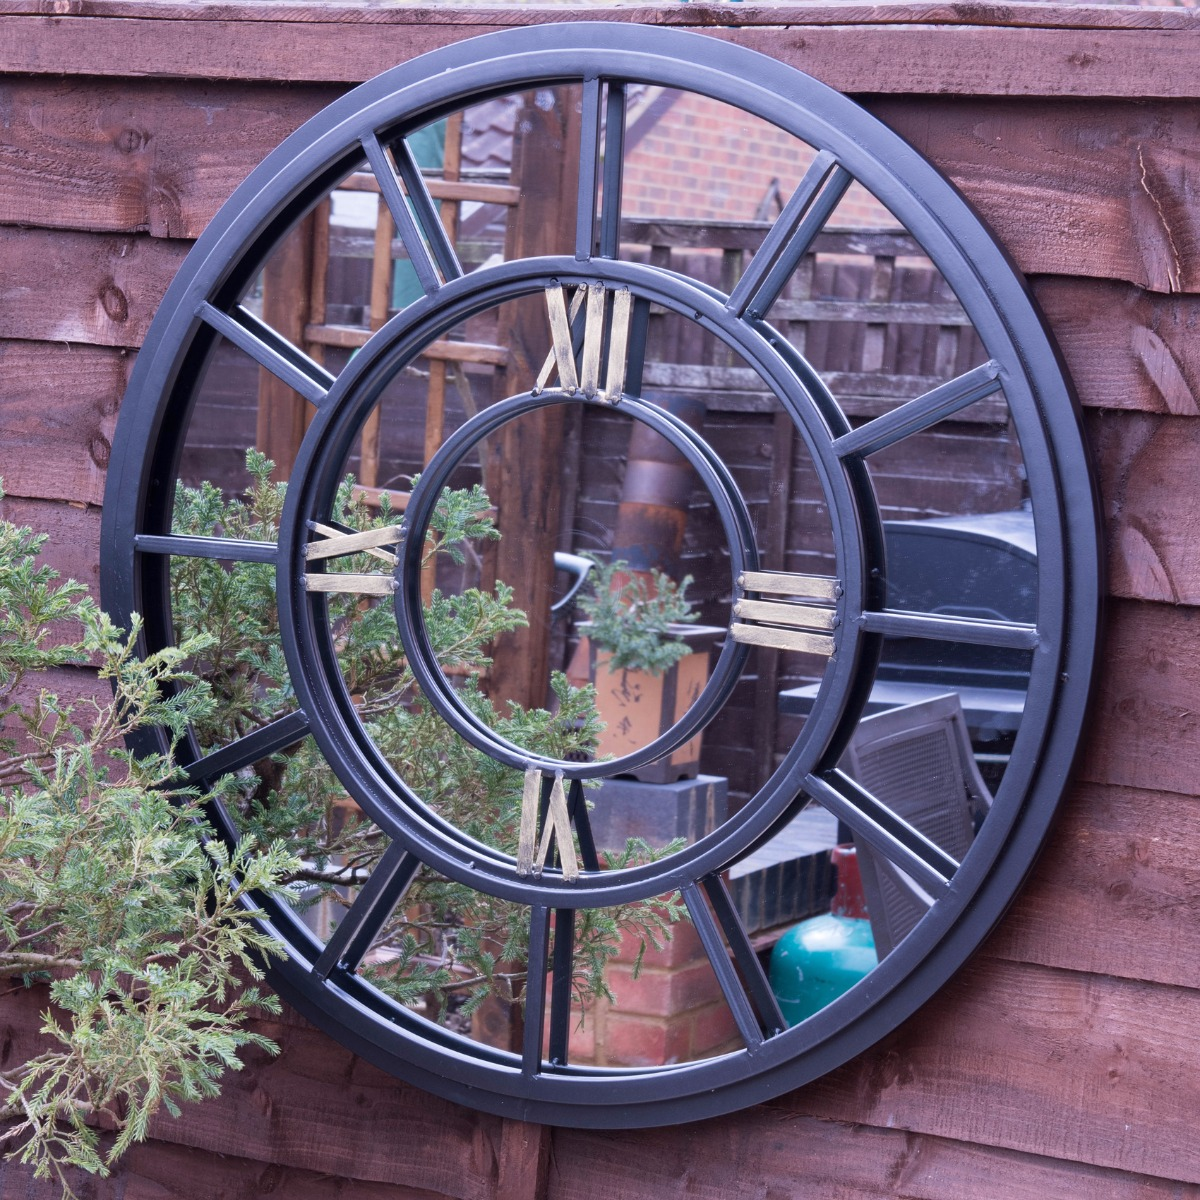 Large Industrial Antiqued Clock Face Style Garden Mirror